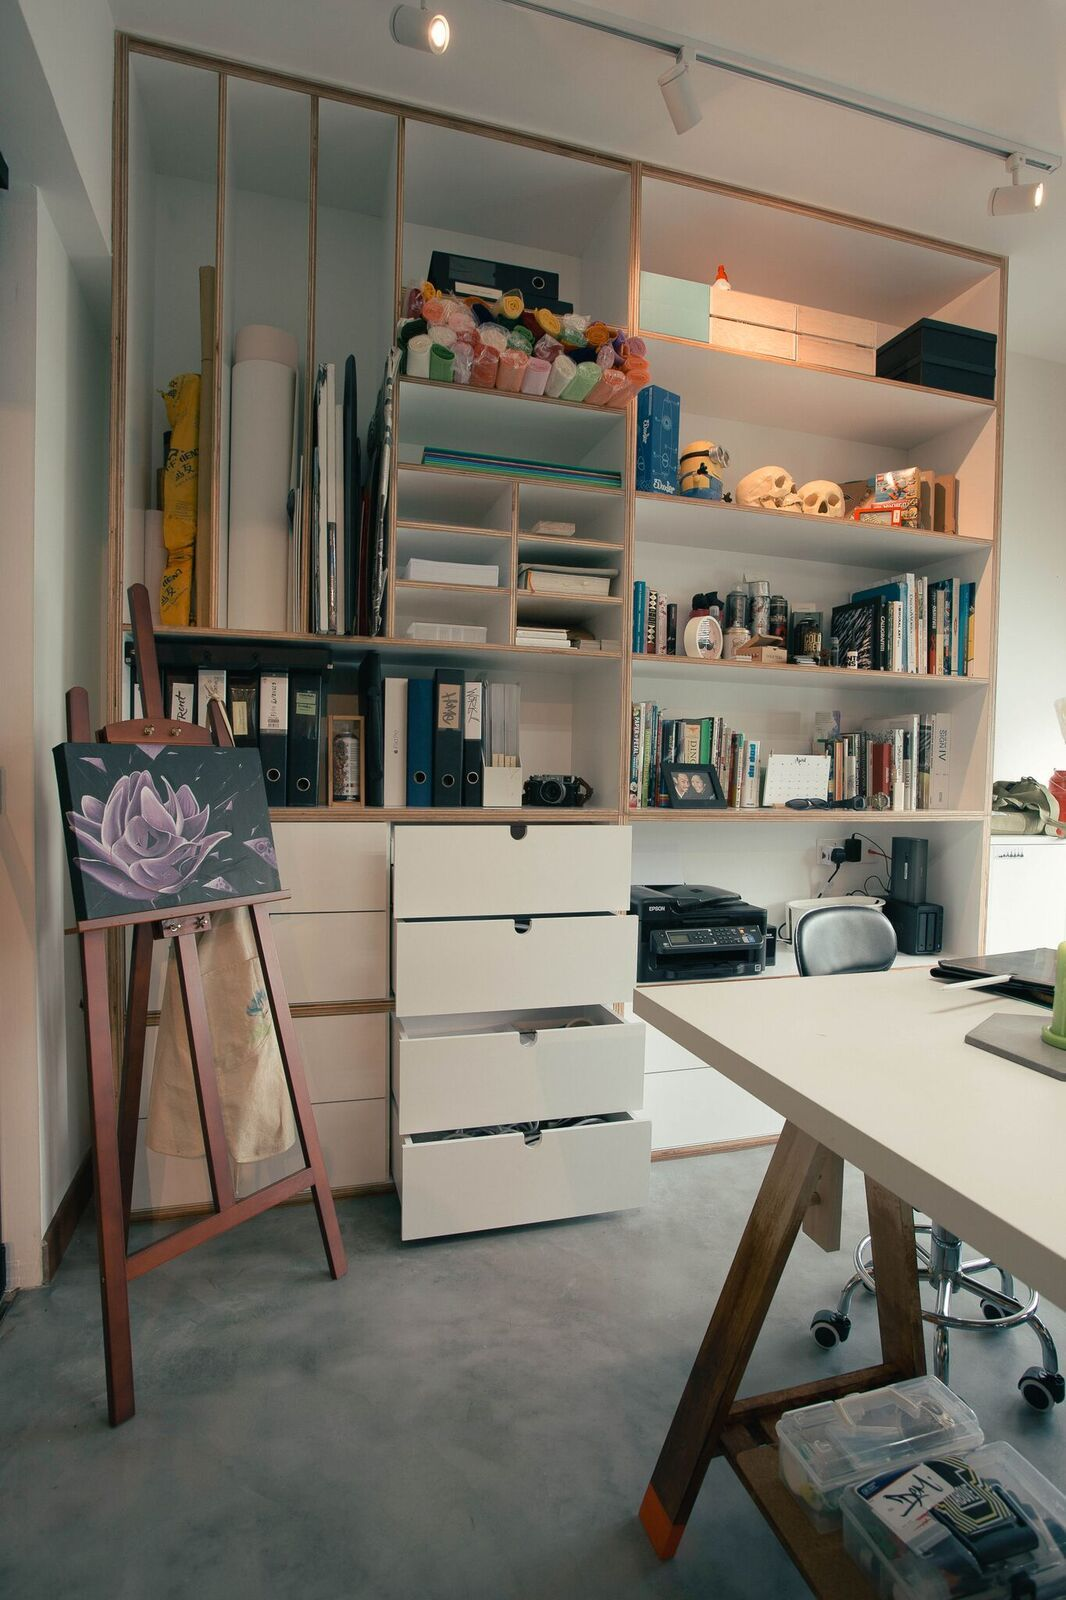 Hdb Study Room Design Ideas: Pegboard And Dowels In A 4-room HDB Flat